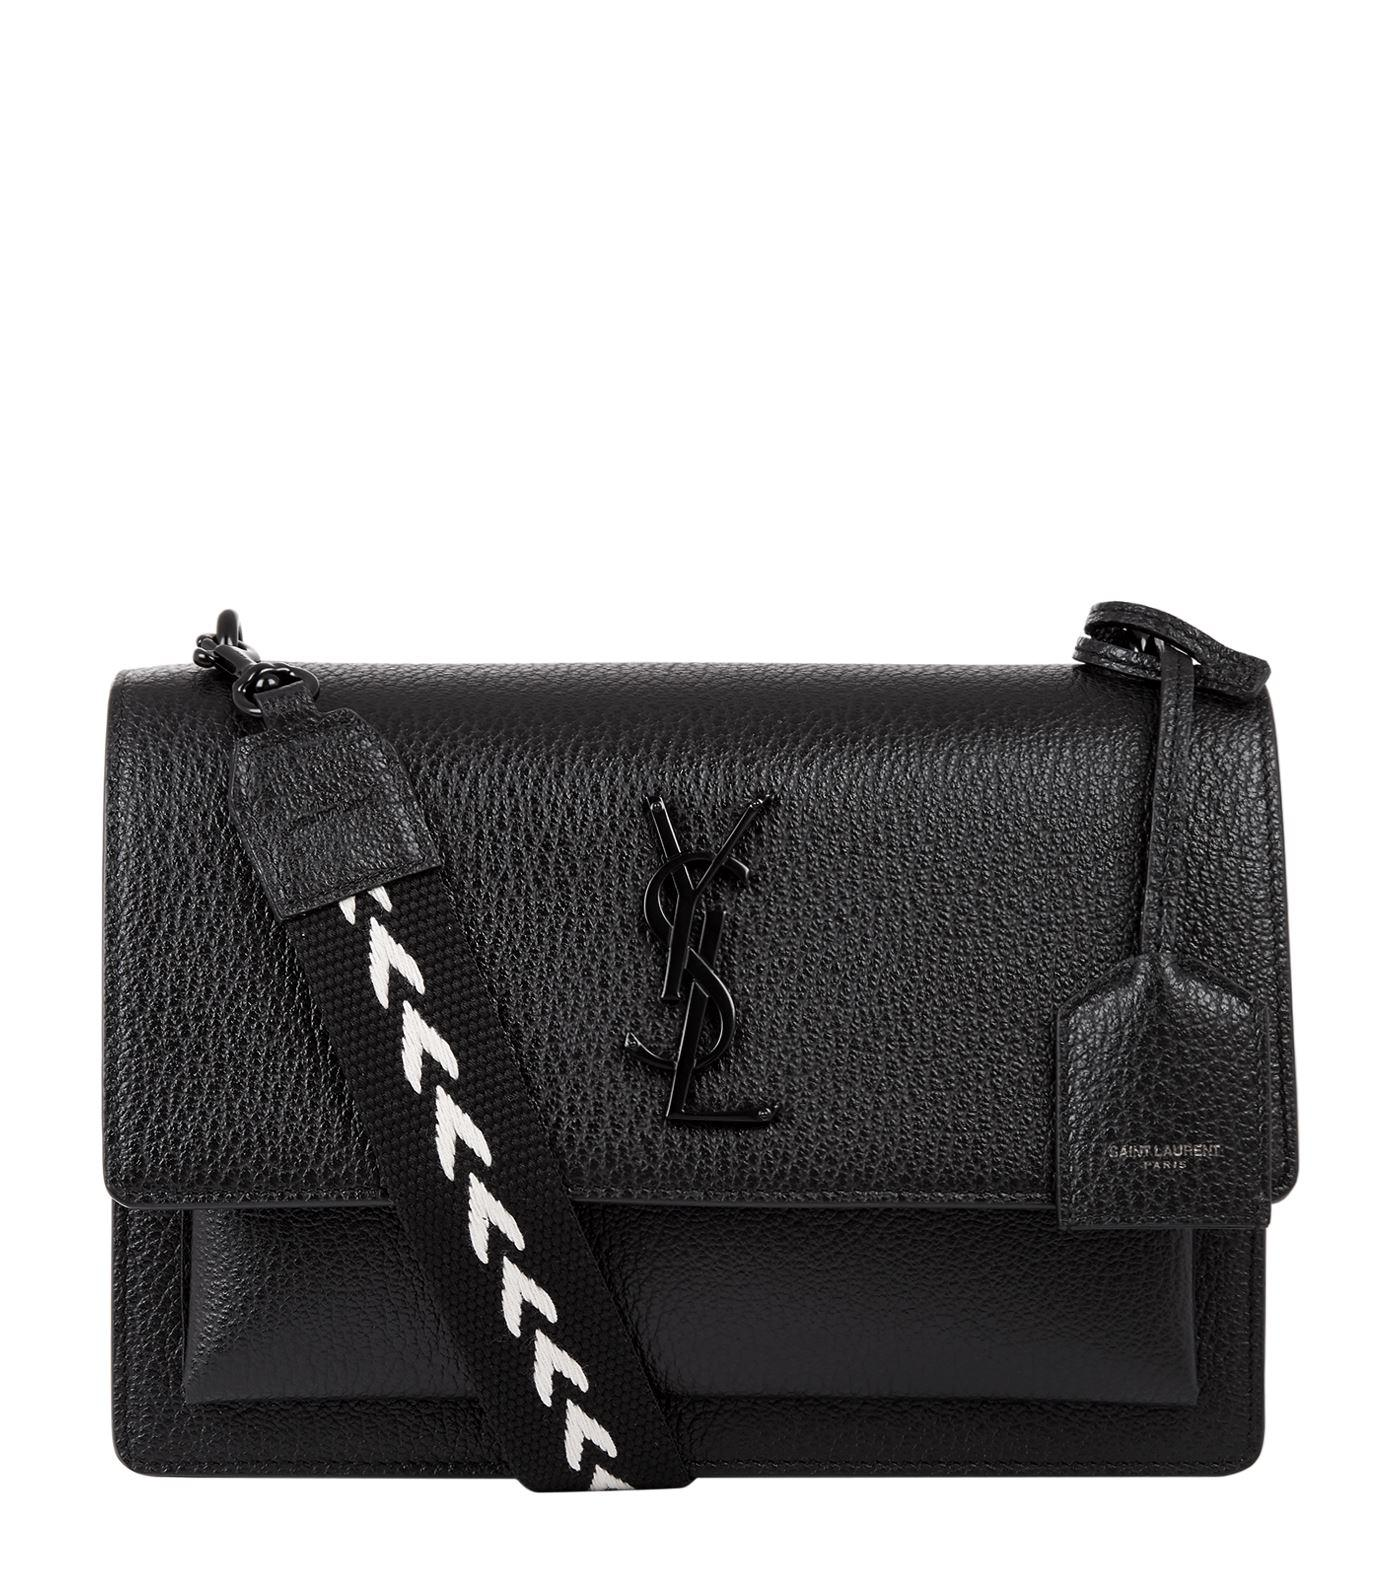 e318fda052 Lyst - Saint Laurent Medium Guitar Strap Sunset Shoulder Bag in Black